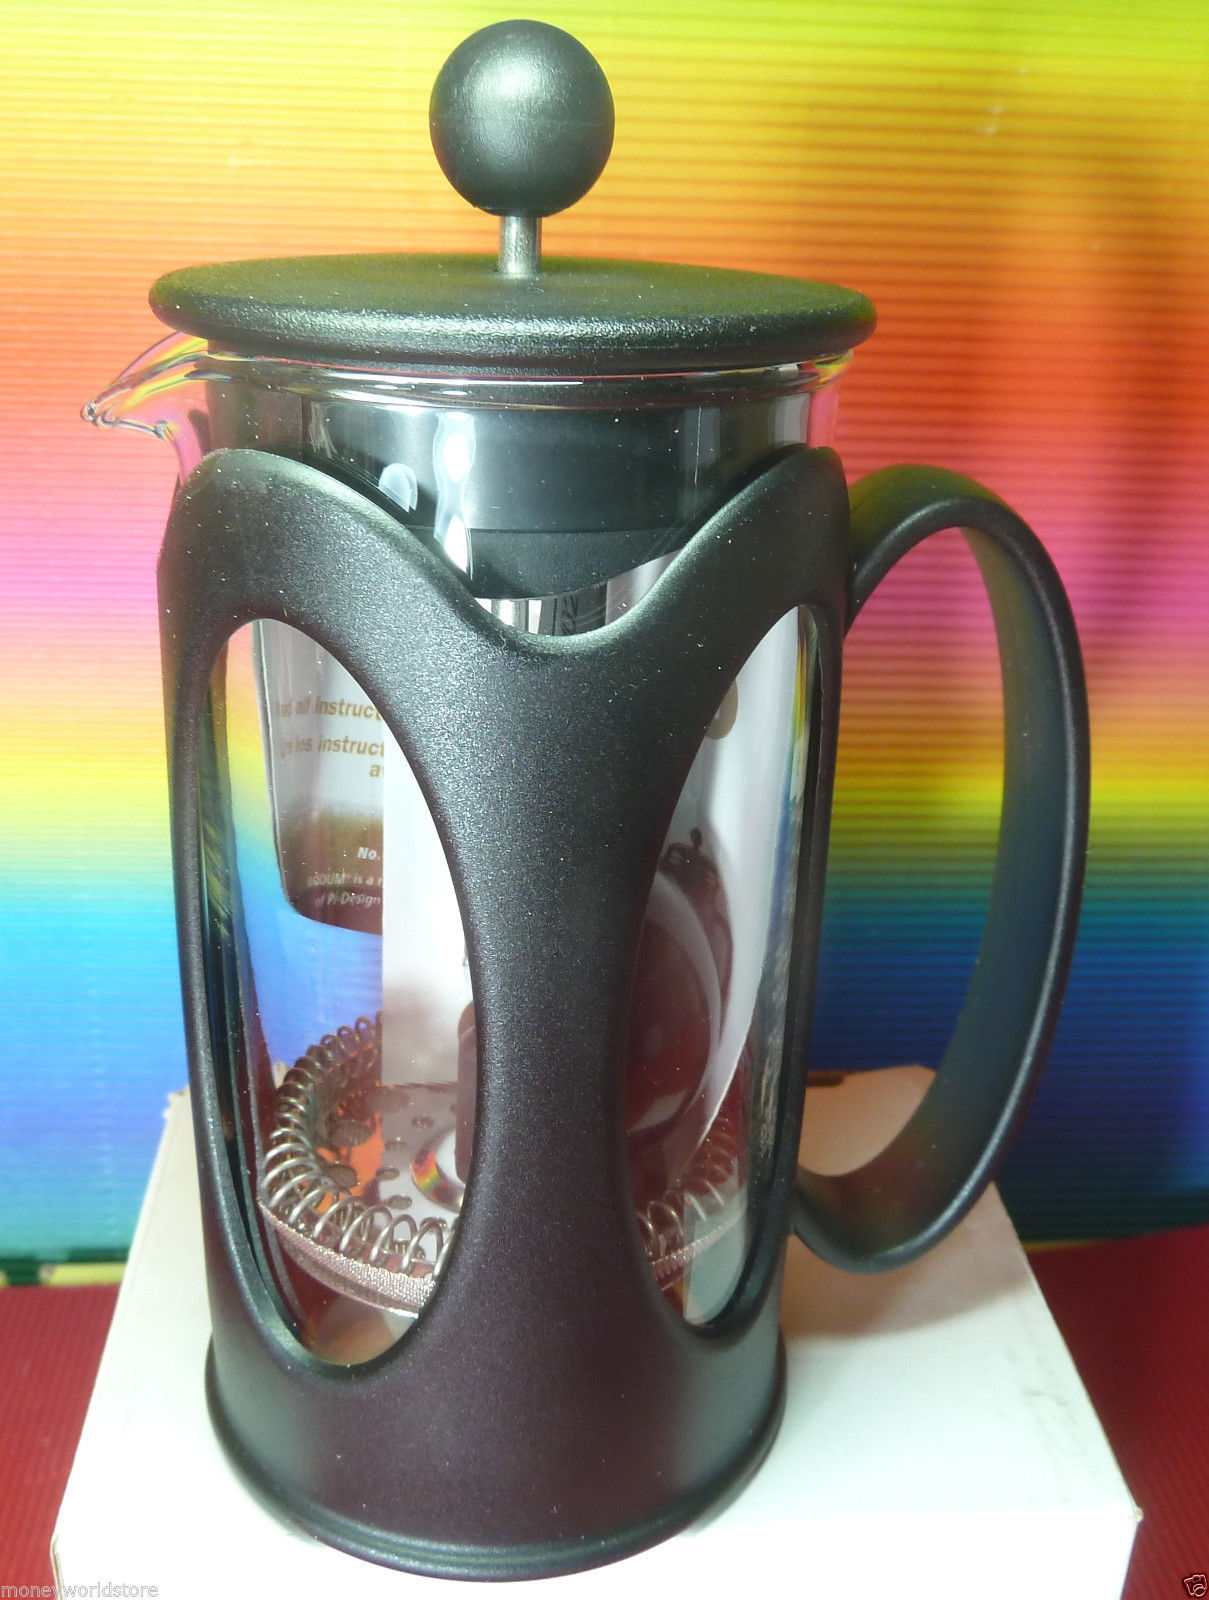 VALENTINE S!! STARBUCKS,BODUM FRENCH PRESS COFFEE MAKER FOR 3 CUPS, NEW,12FL OZ - Starbucks